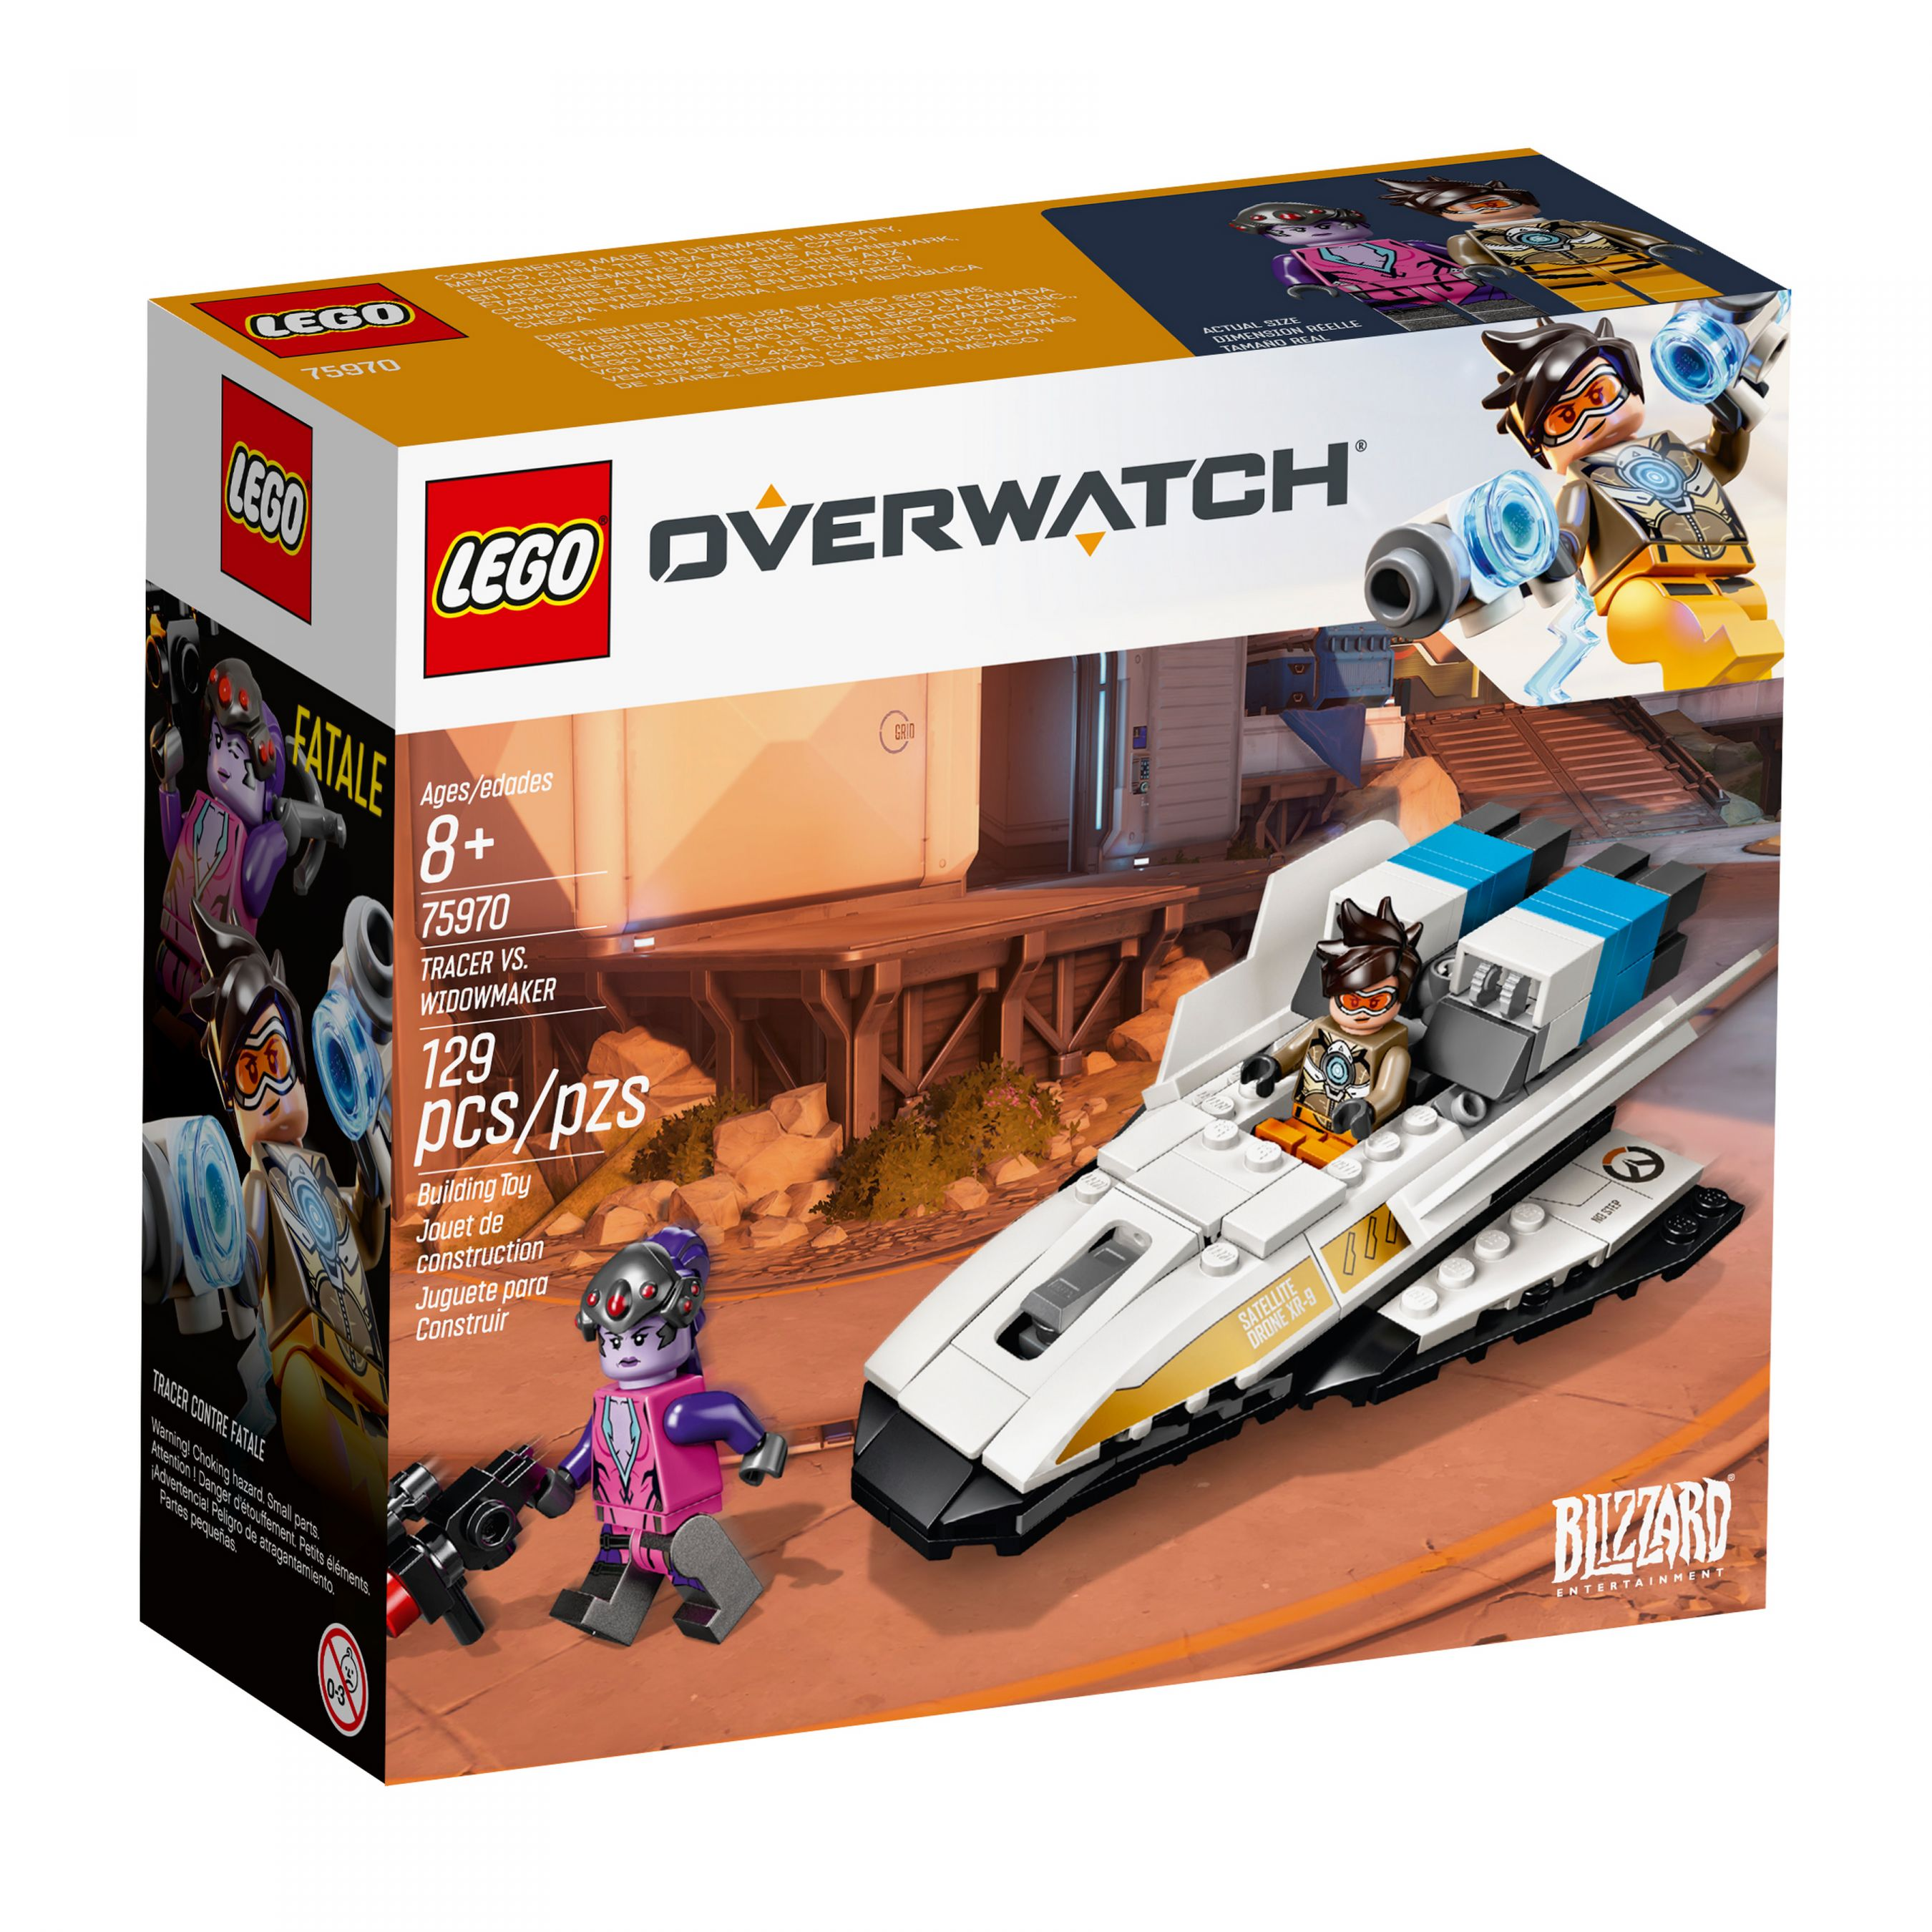 LEGO Overwatch 75970 Tracer vs. Widowmaker LEGO_75970_alt1.jpg